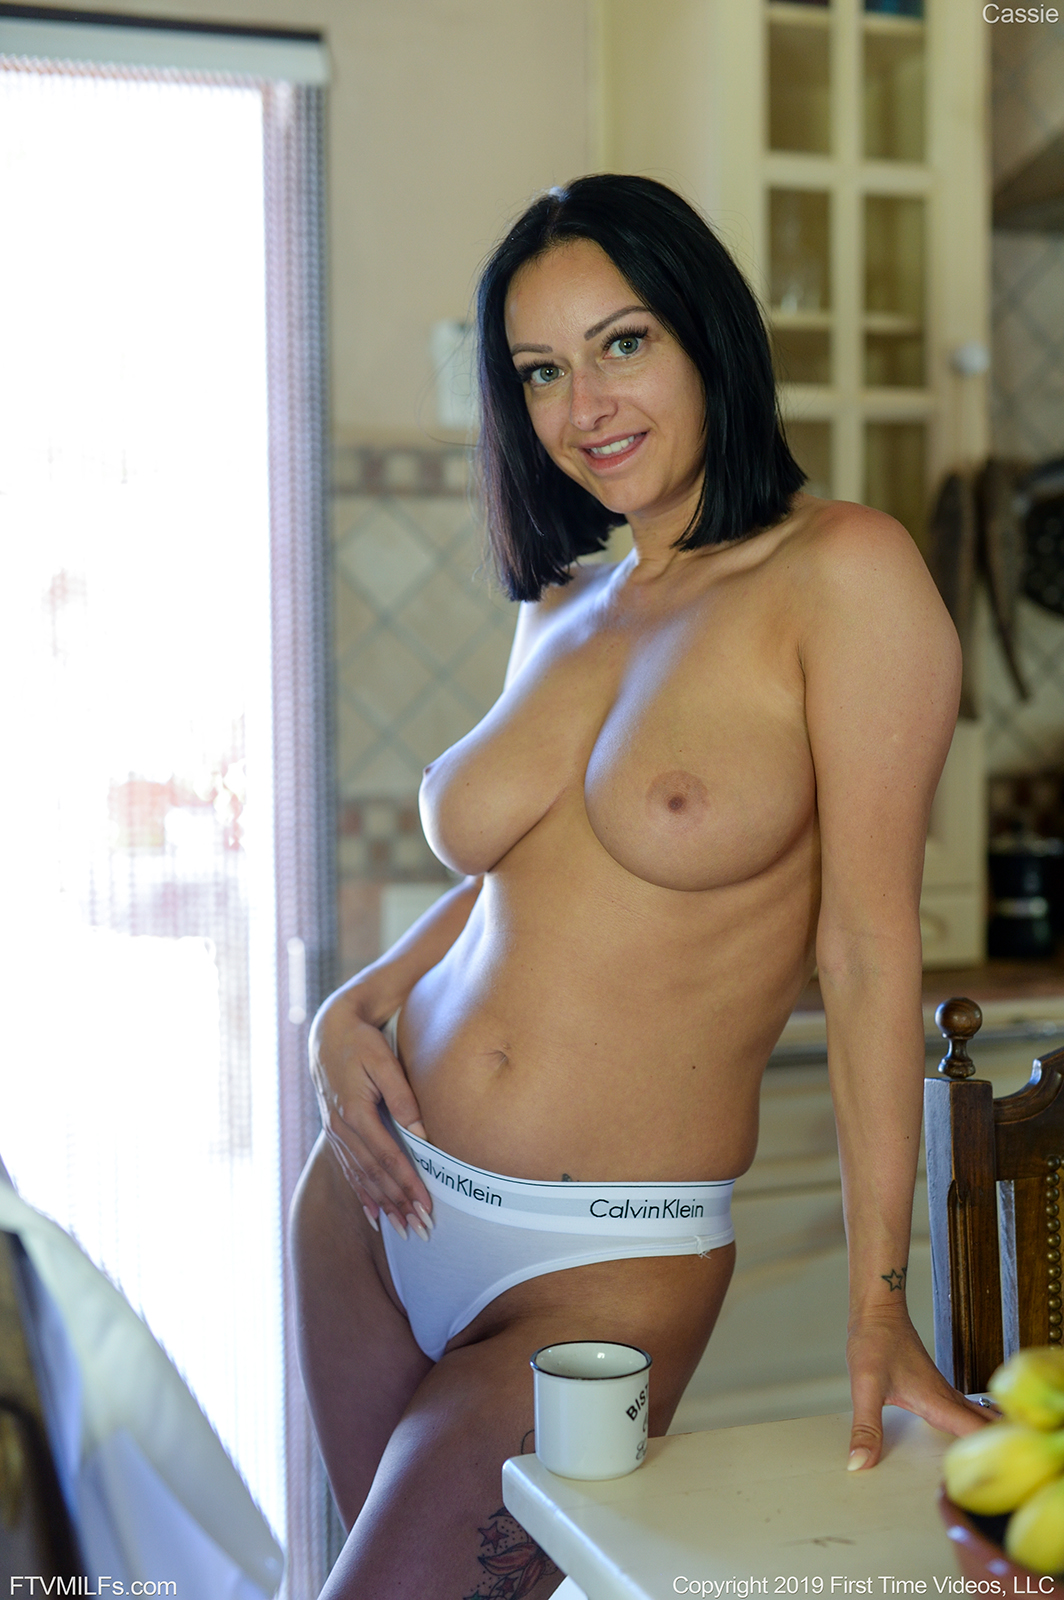 cassie-topless-pictures-play-porn-games-for-free